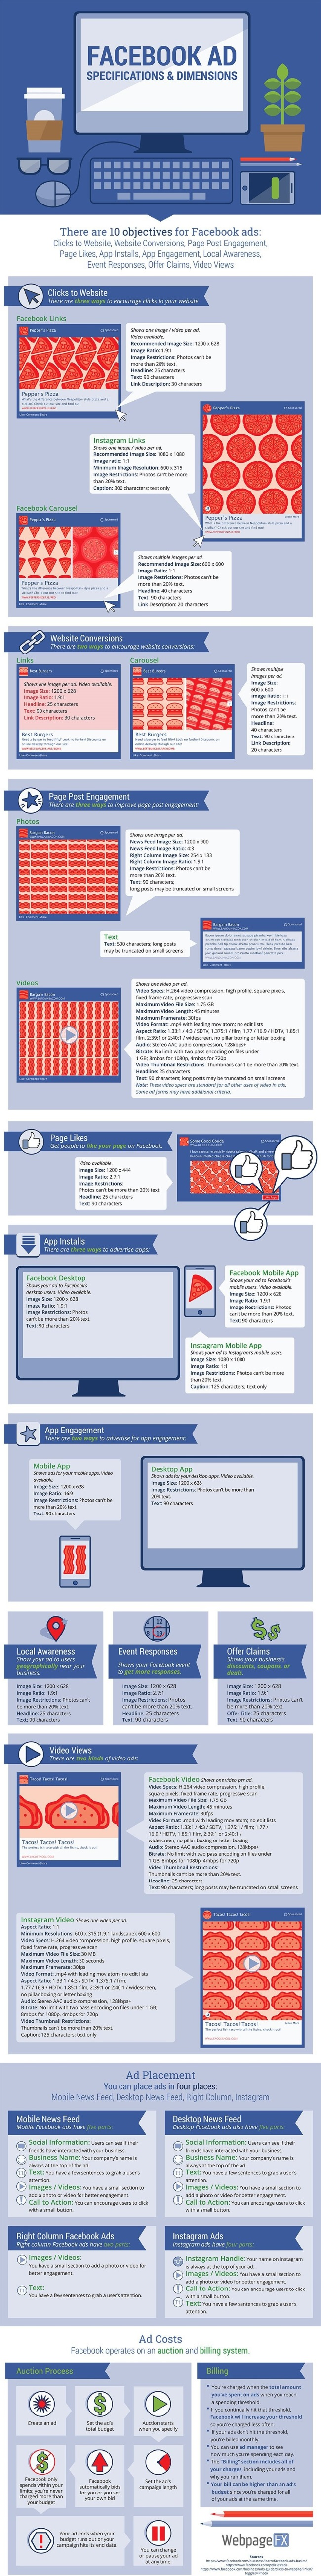 What an Optimized Facebook Ad Looks like, and How You Can Make One